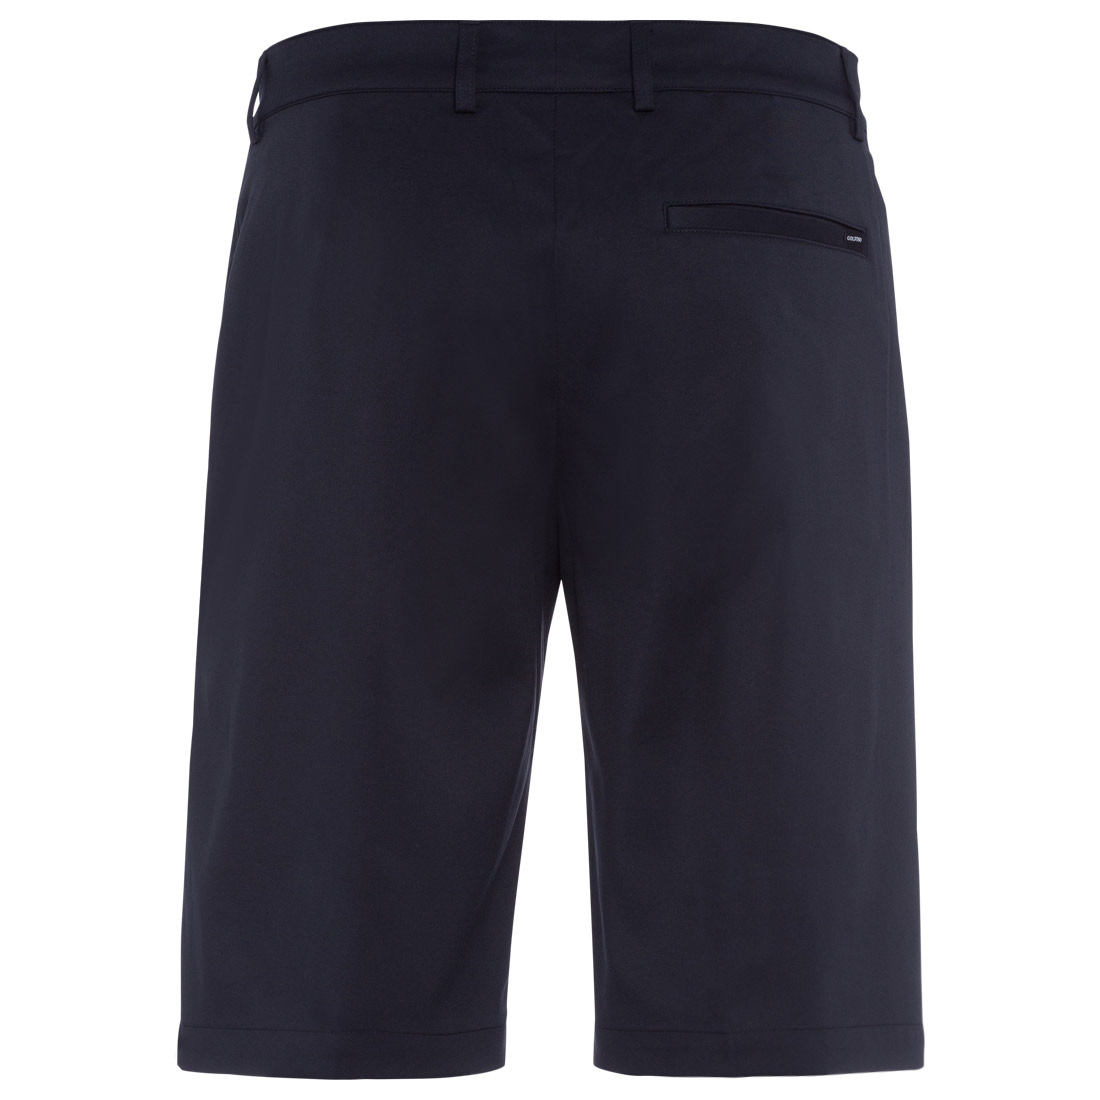 Funktions-Golfshort Quick Dry Cooling in Regular Fit